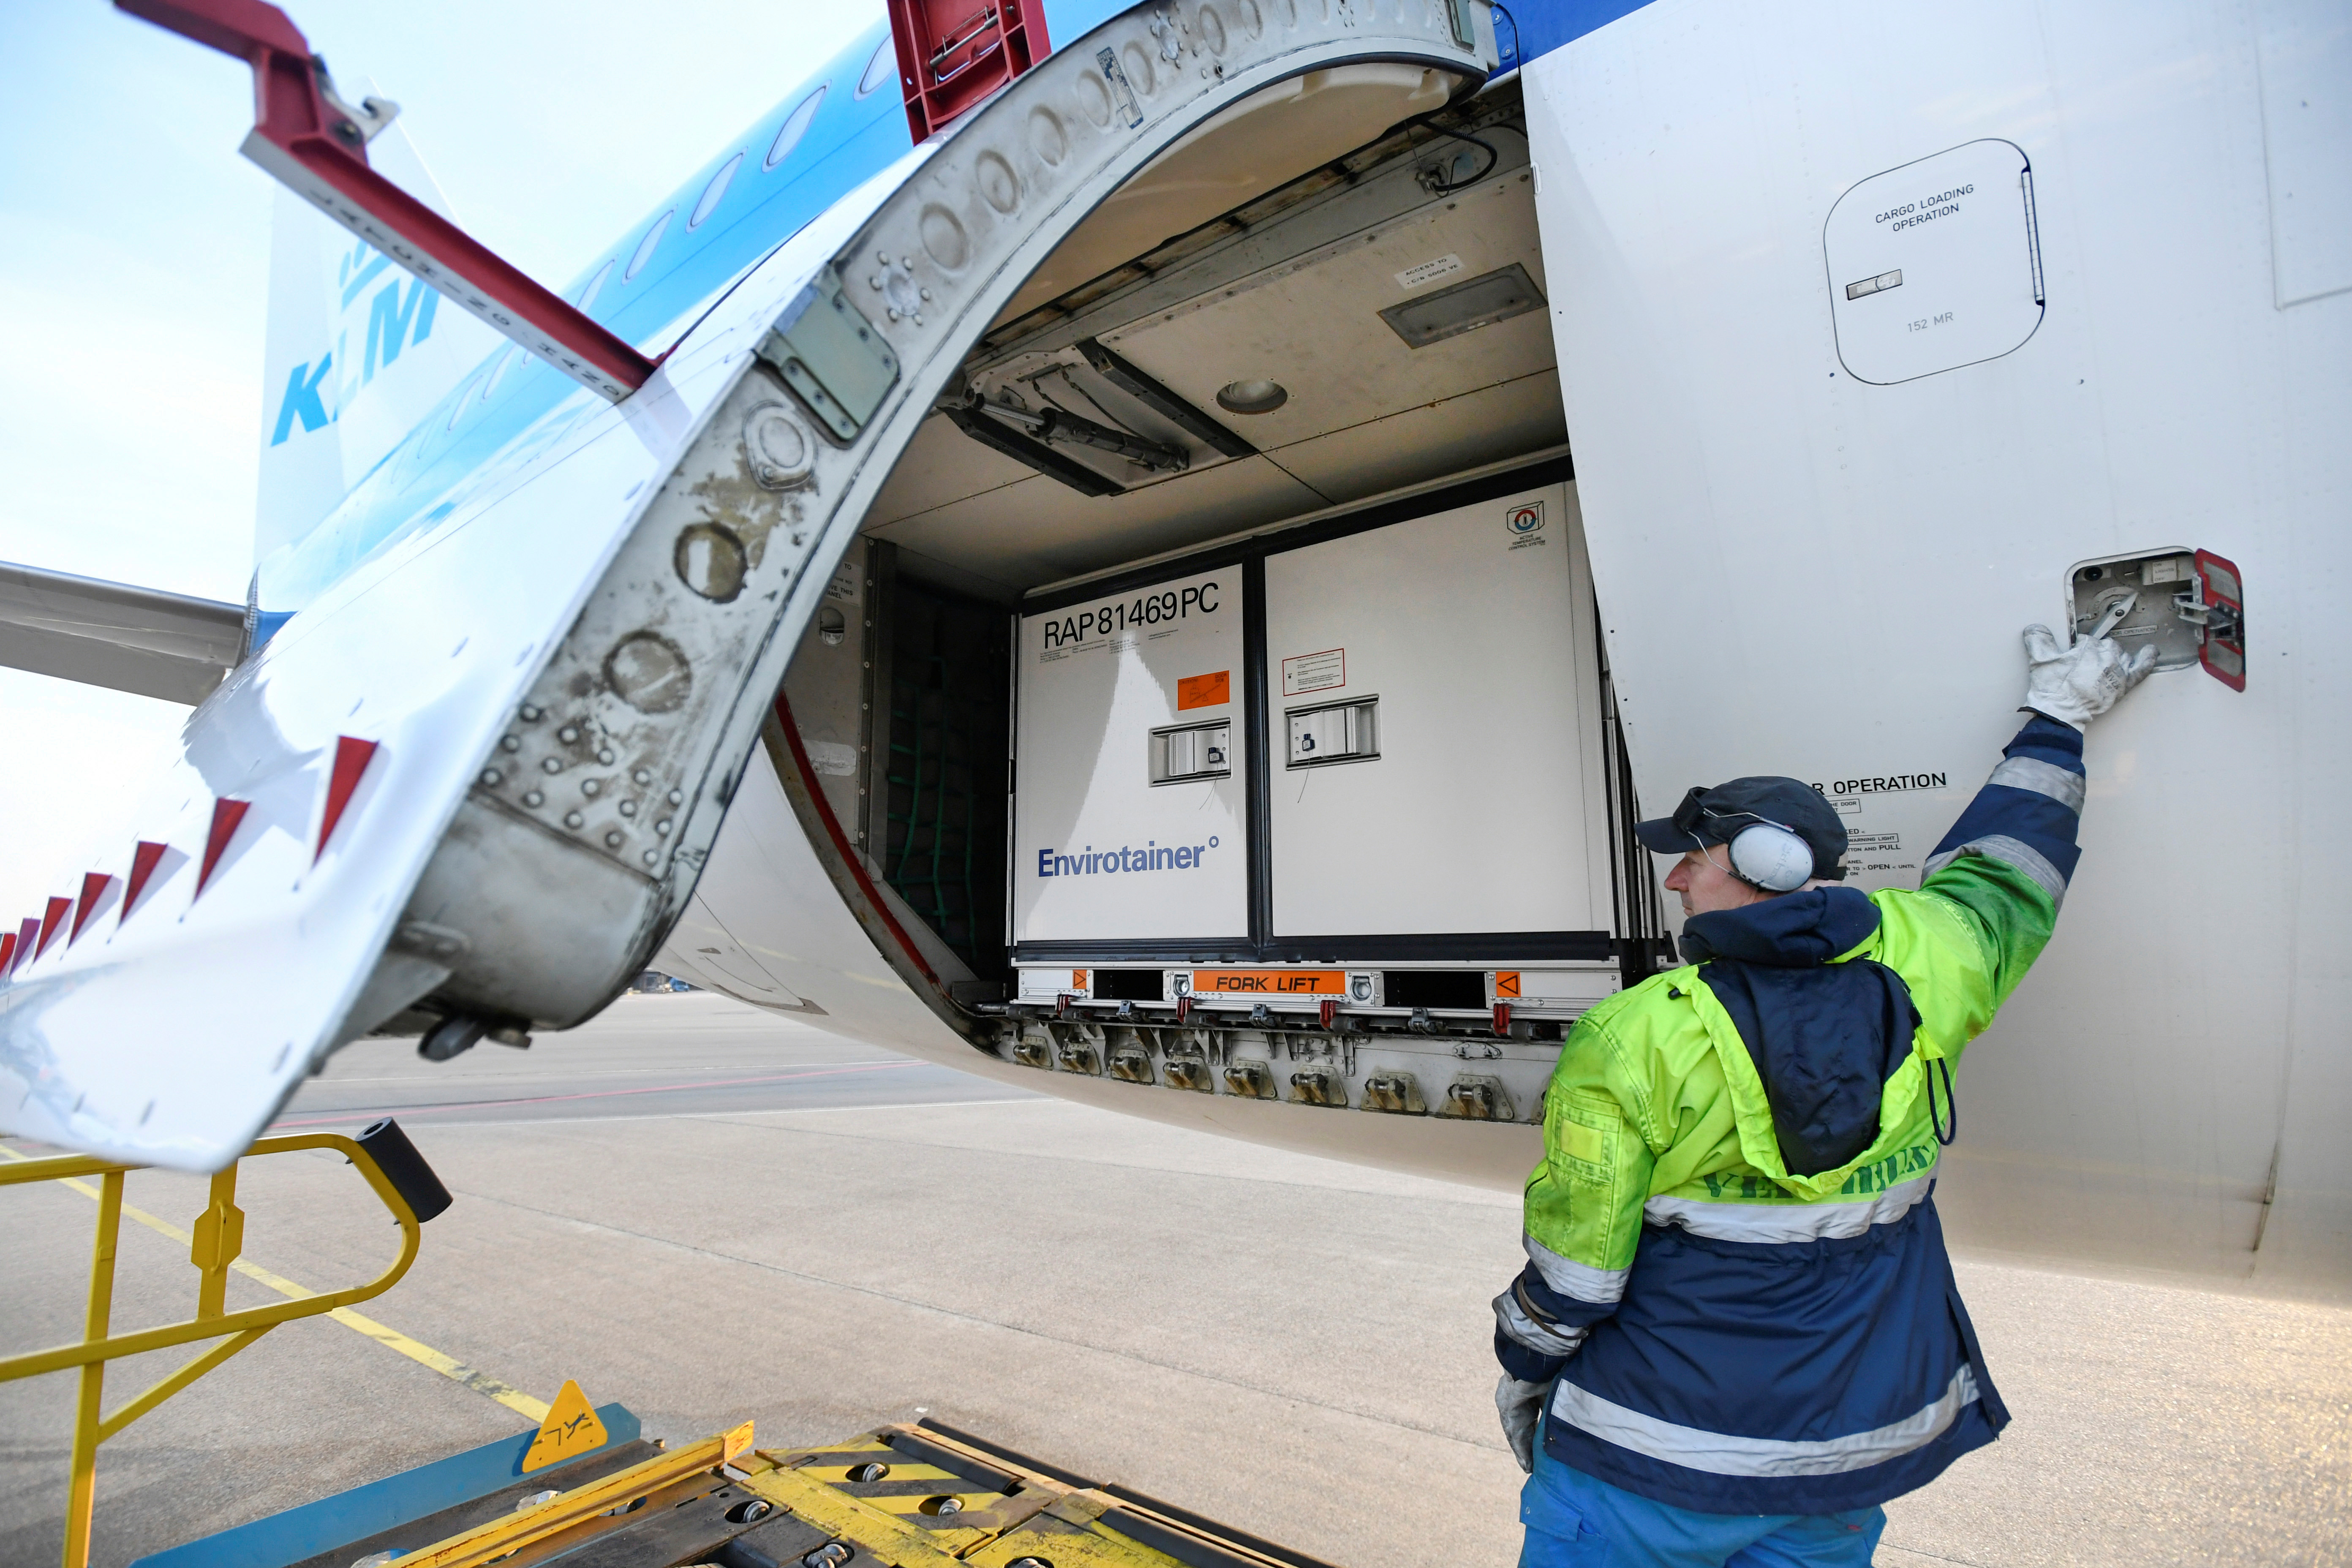 Cool boxes are loaded as Air France-KLM's cargo operations prepare a massive logistical operation to distribute new COVID-19 vaccines, Amsterdam's Schiphol Airport, Netherlands, November 25, 2020. Photo: REUTERS/Piroschka van de Wouw